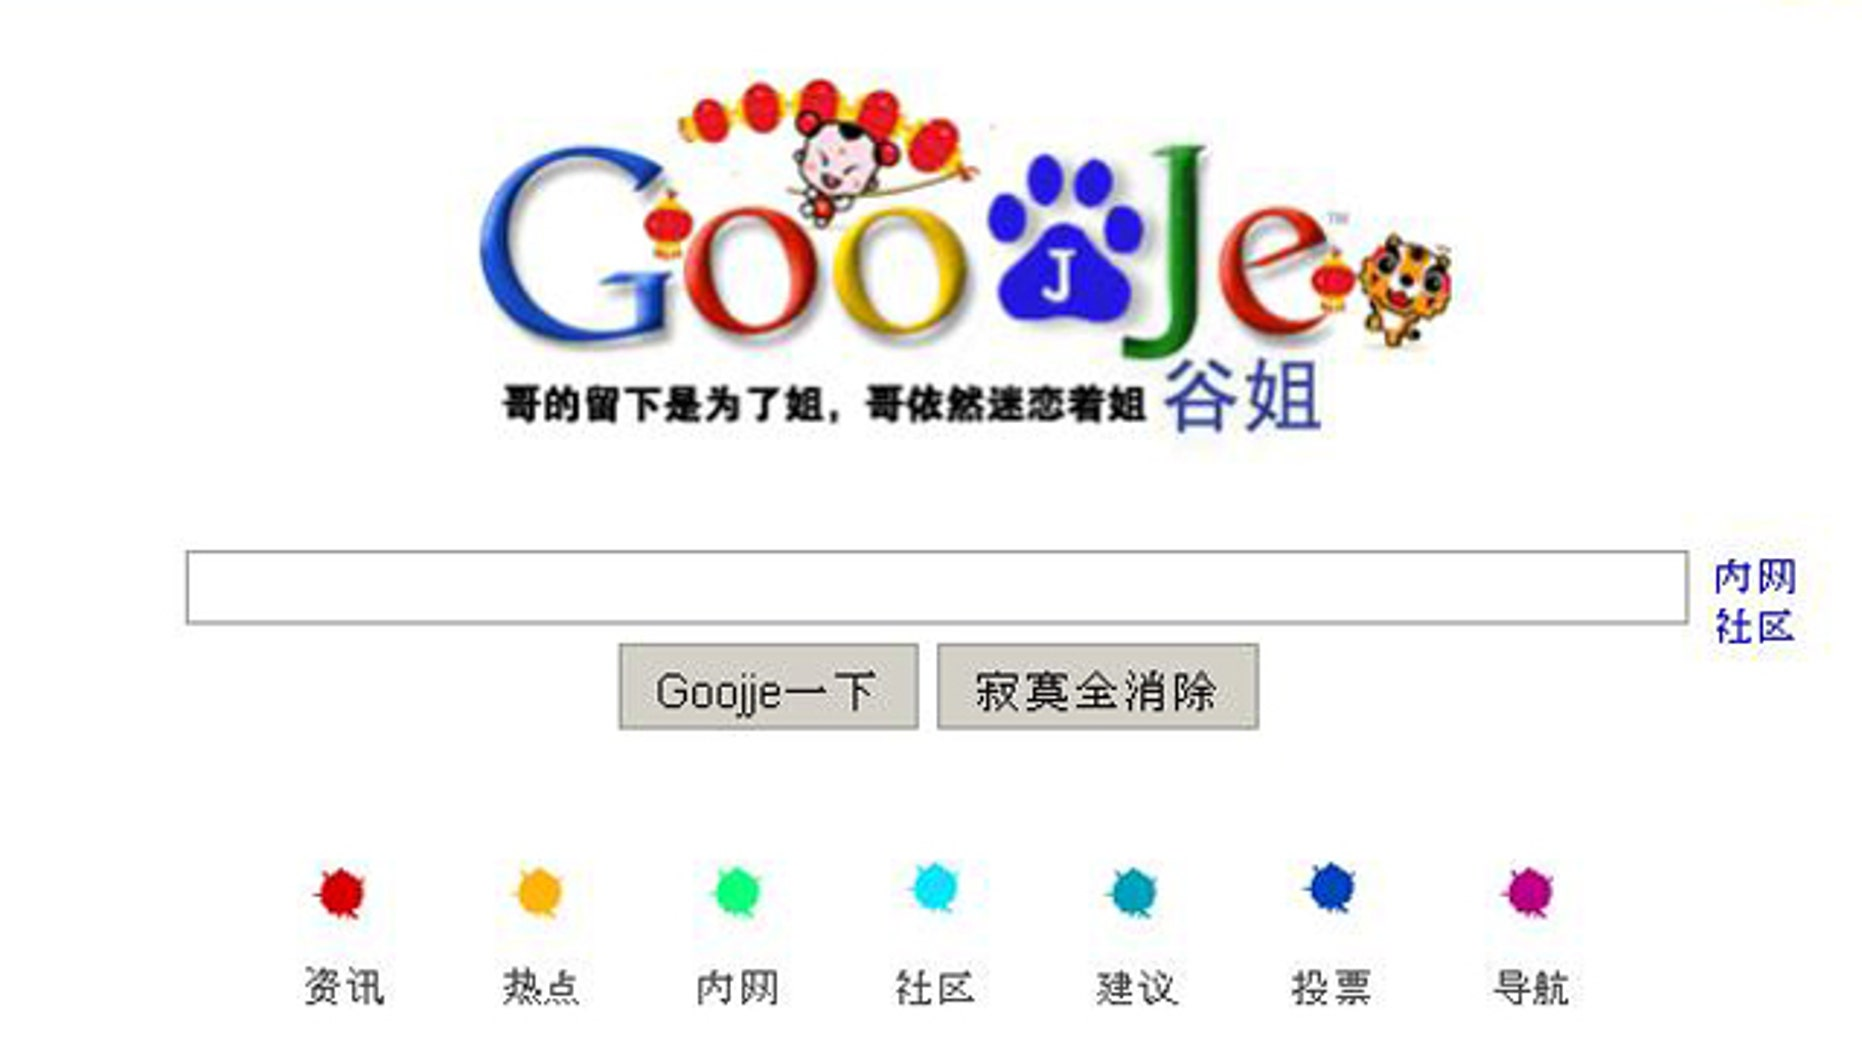 A screen capture of the Goojje.com Web site, which Google is accusing of copyright infringement.